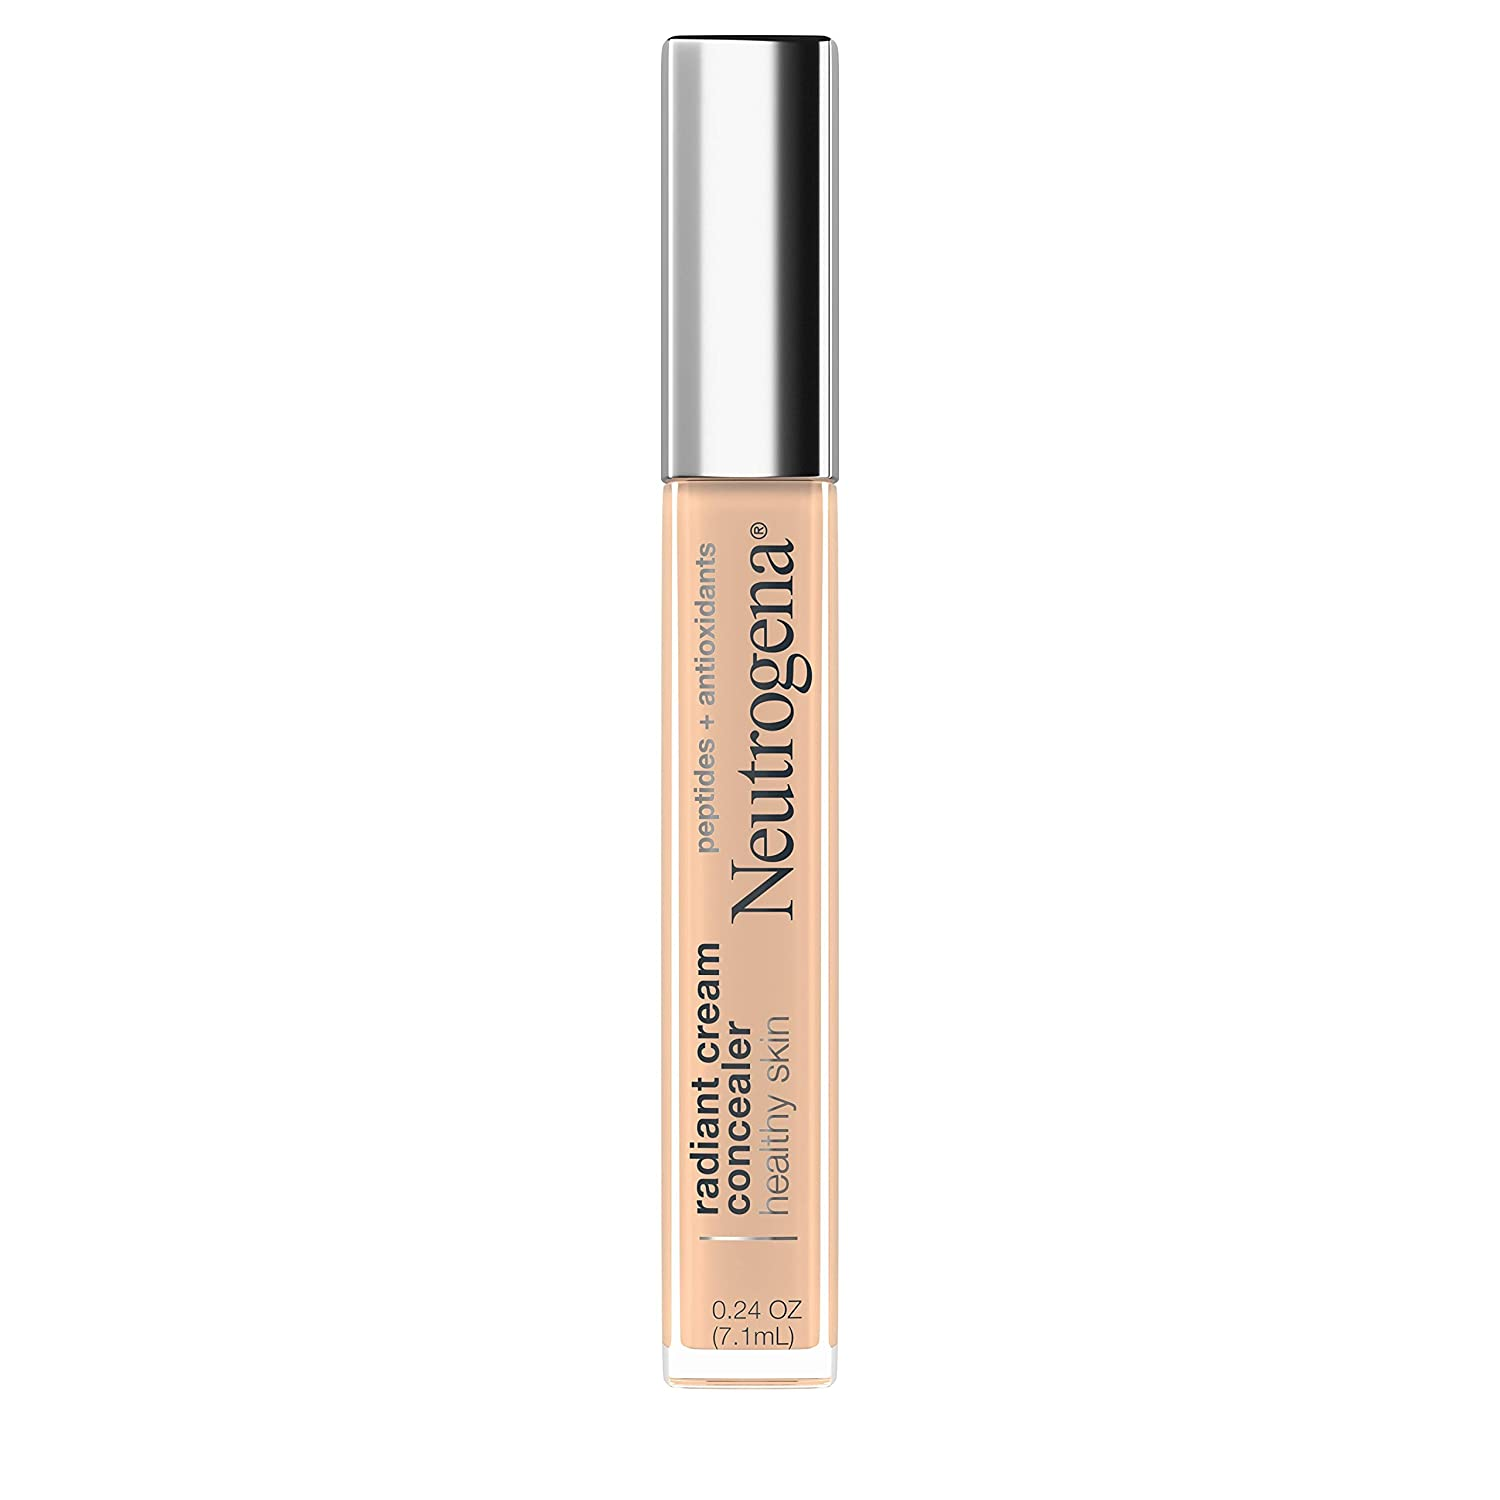 Neutrogena Healthy Skin Radiant Brightening Cream Concealer with Peptides & Vitamin E Antioxidant, Lightweight Perfecting Concealer Cream, Non-Comedogenic, Ecru Light 02 with cool undertones, 0.24 oz